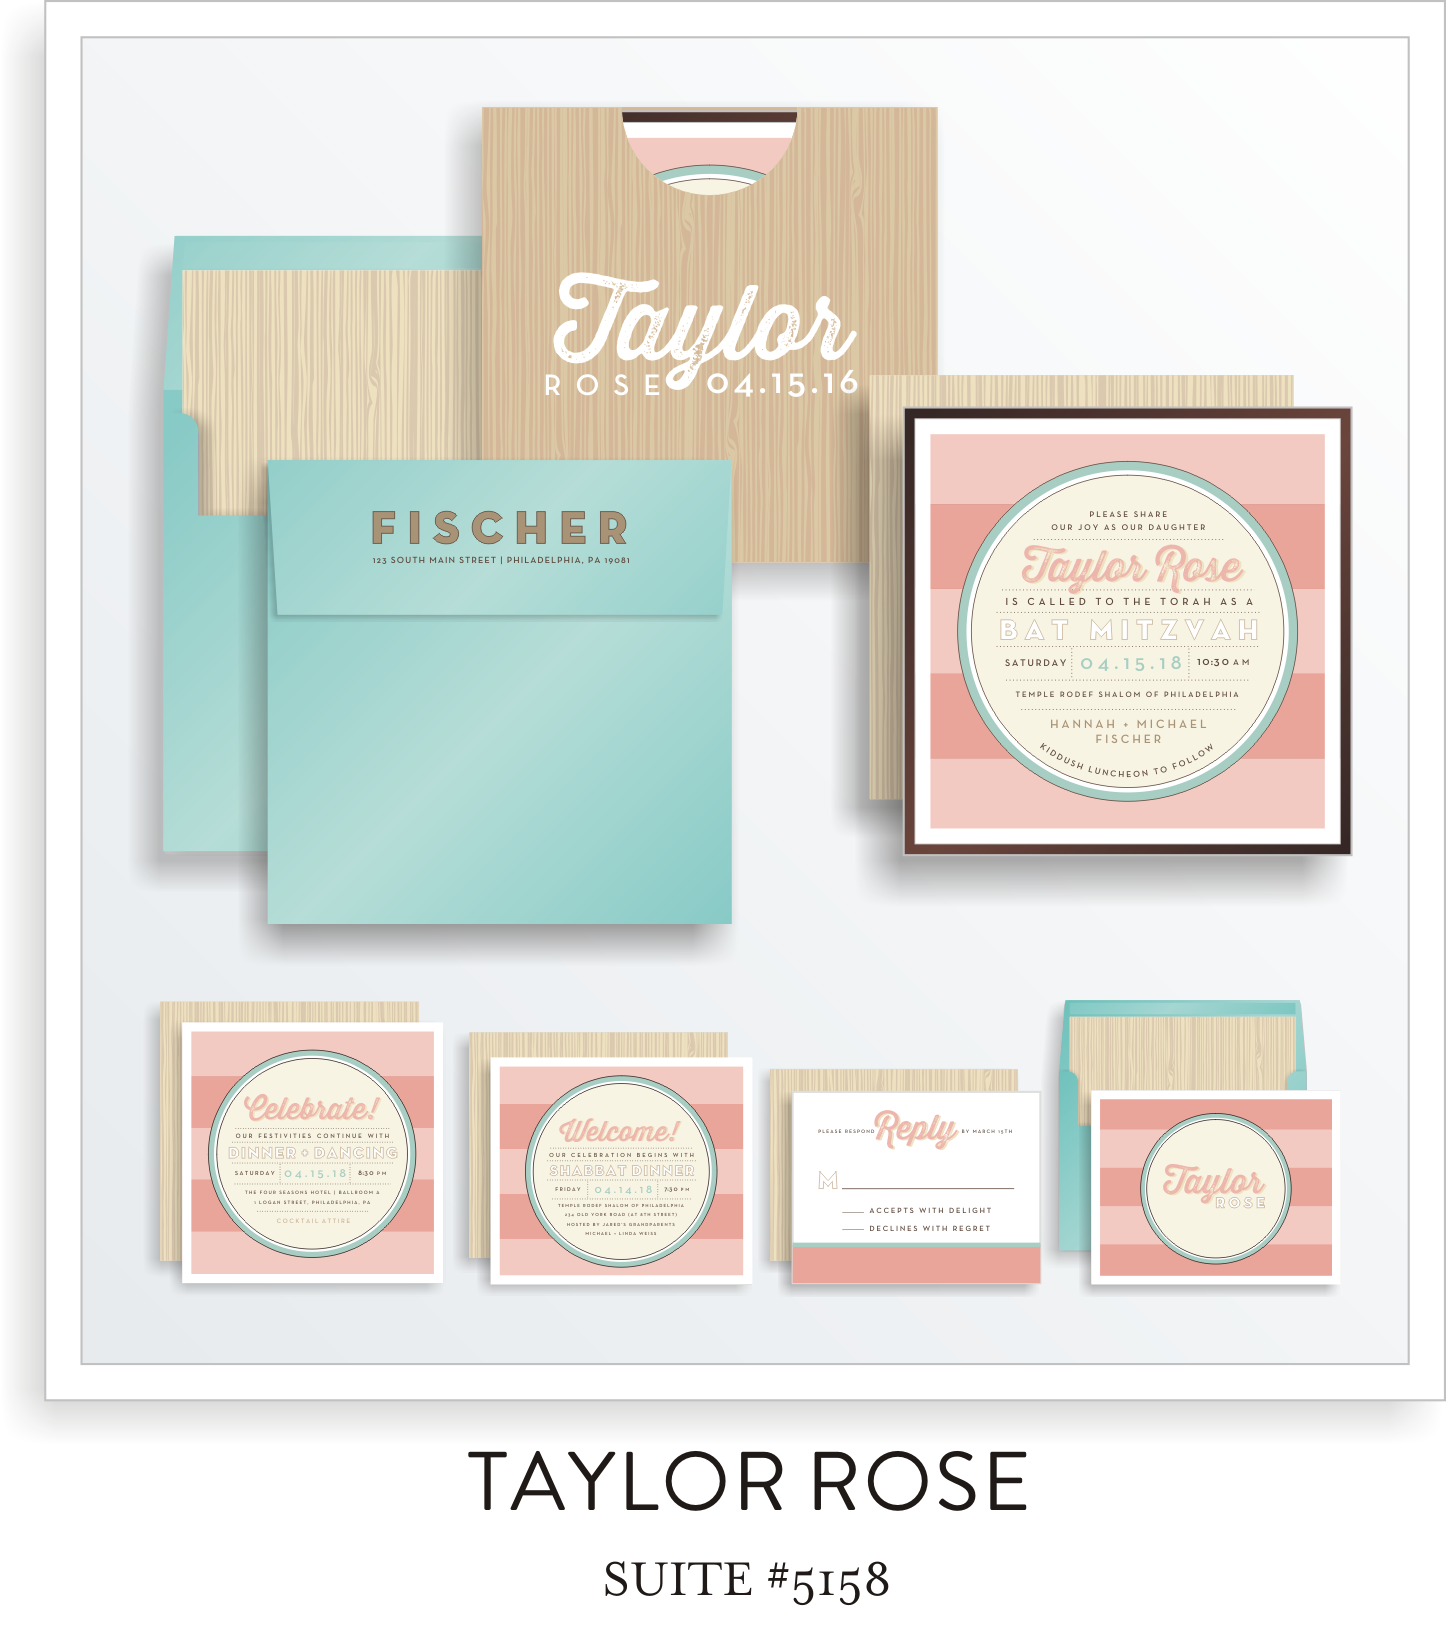 Bat Mitzvah Invitation Suite 5158 - Taylor Rose